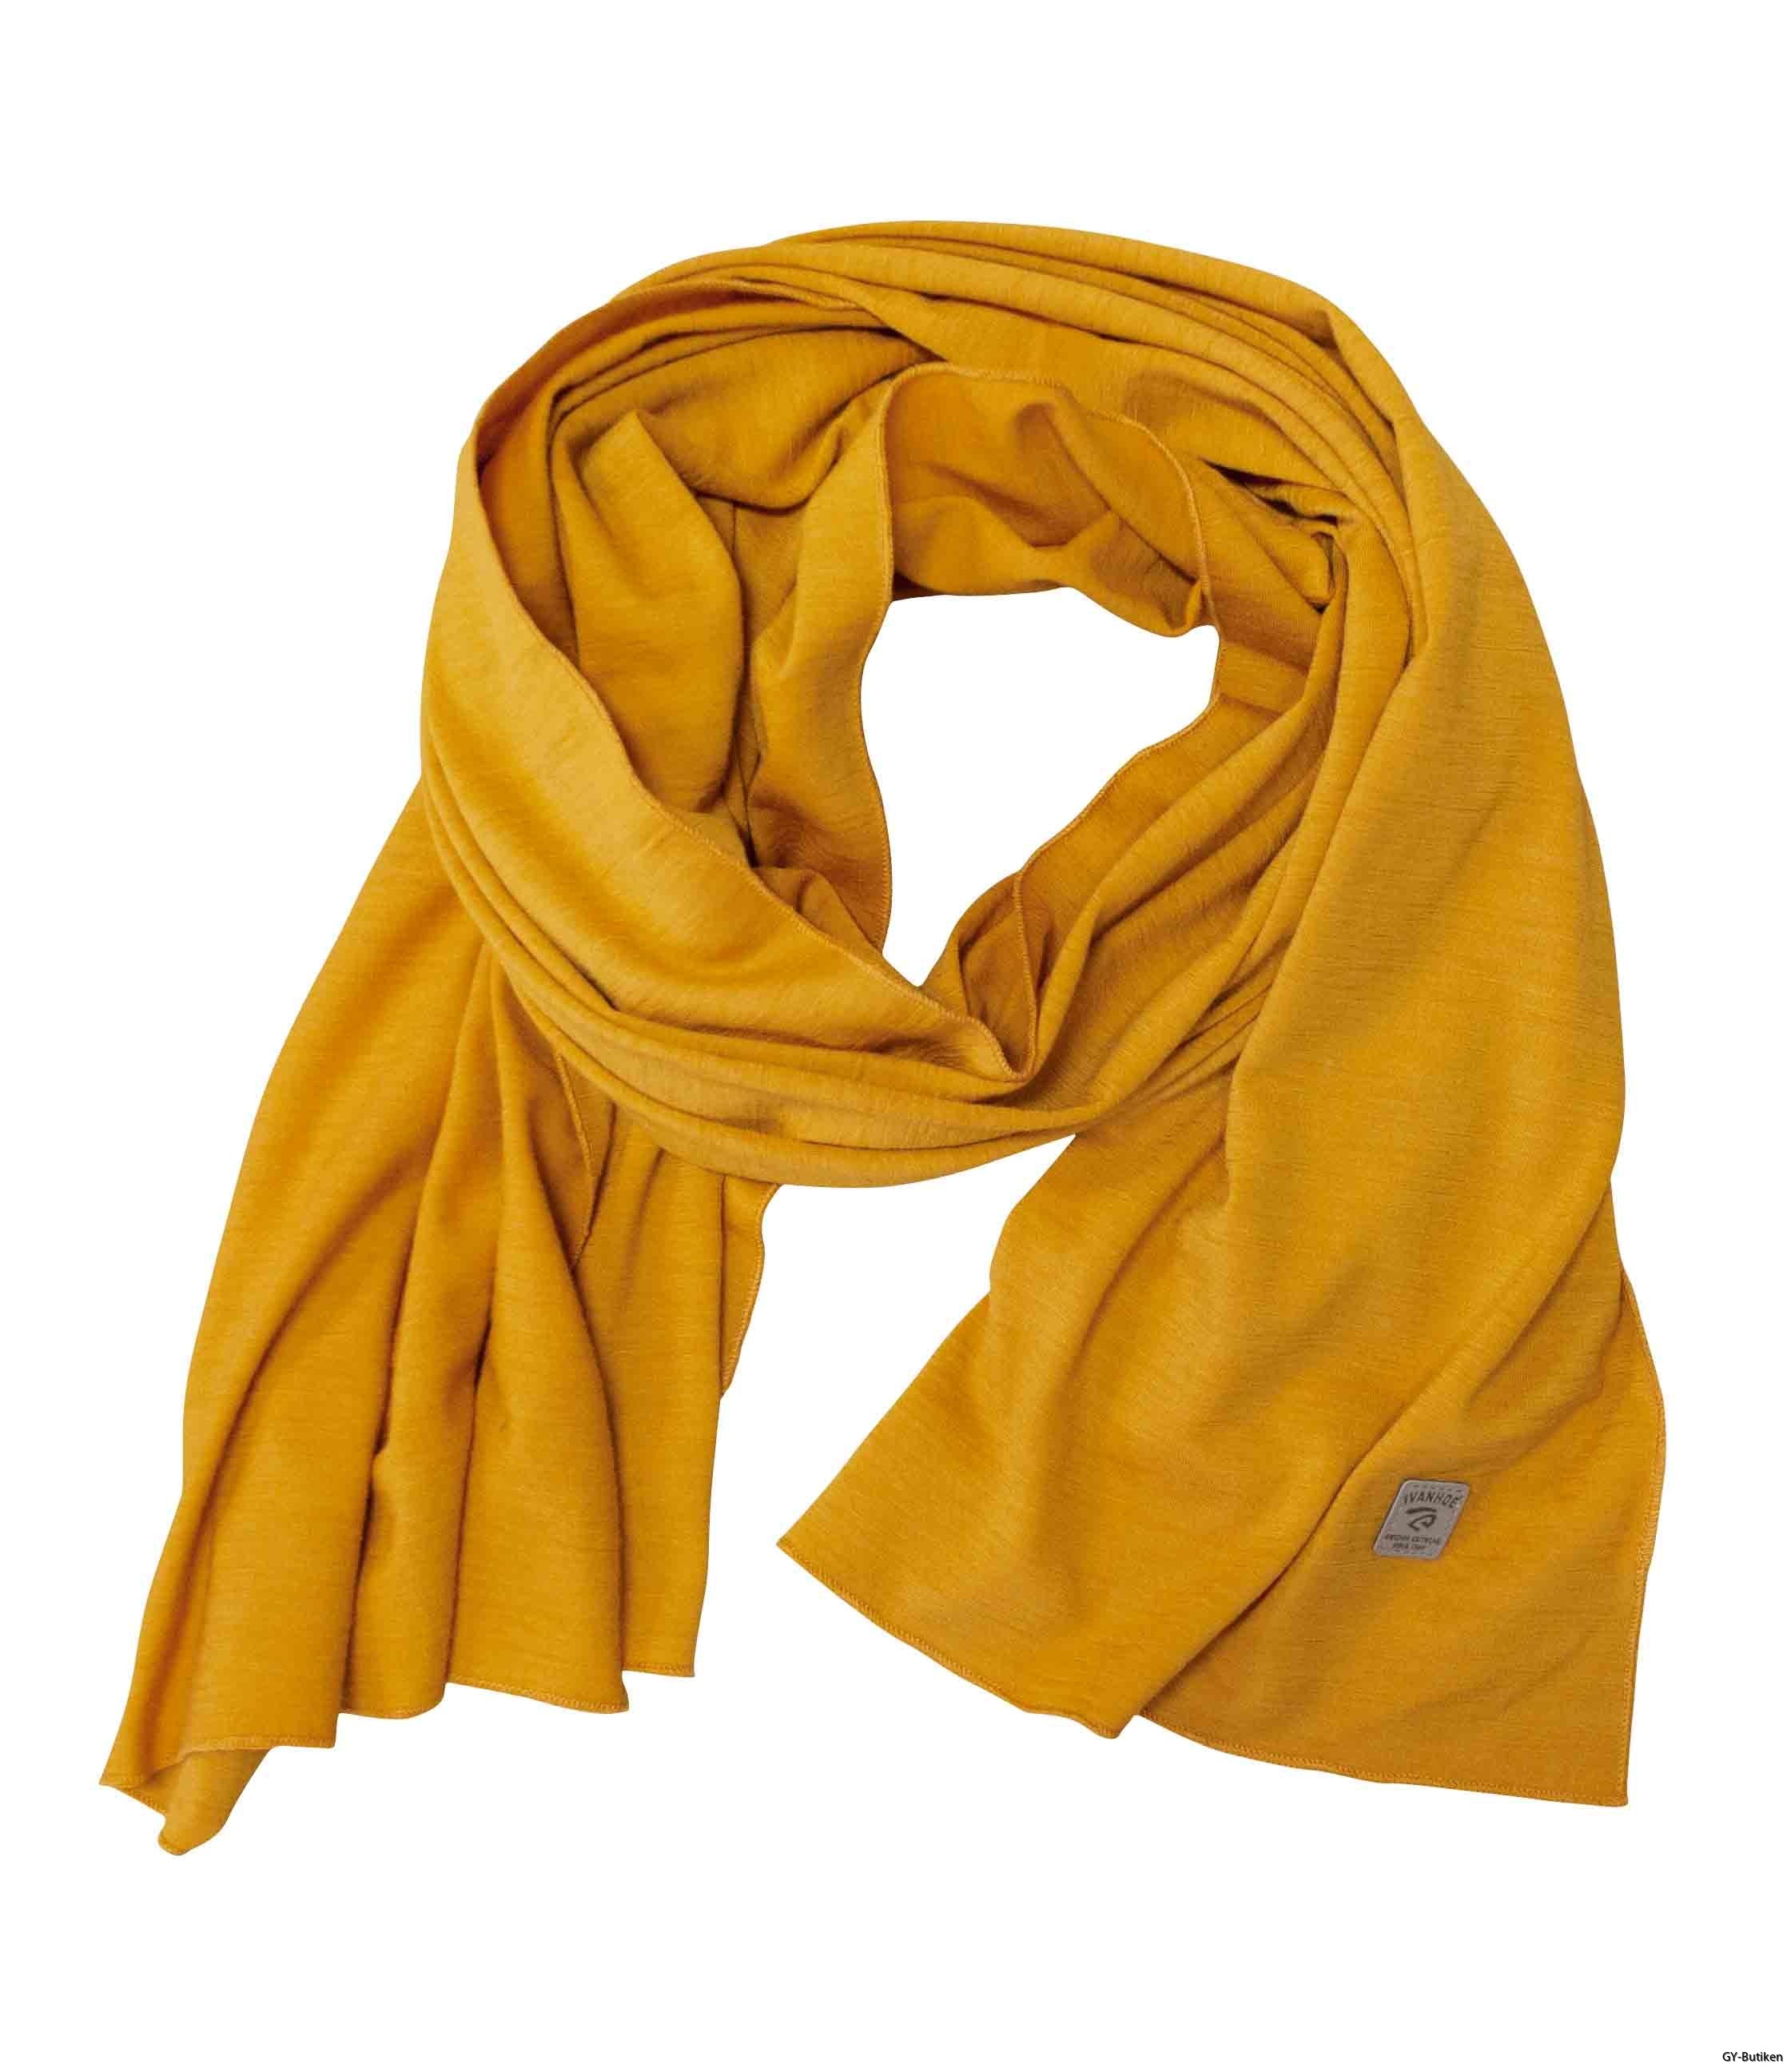 GY_Hulared_Scarf_073